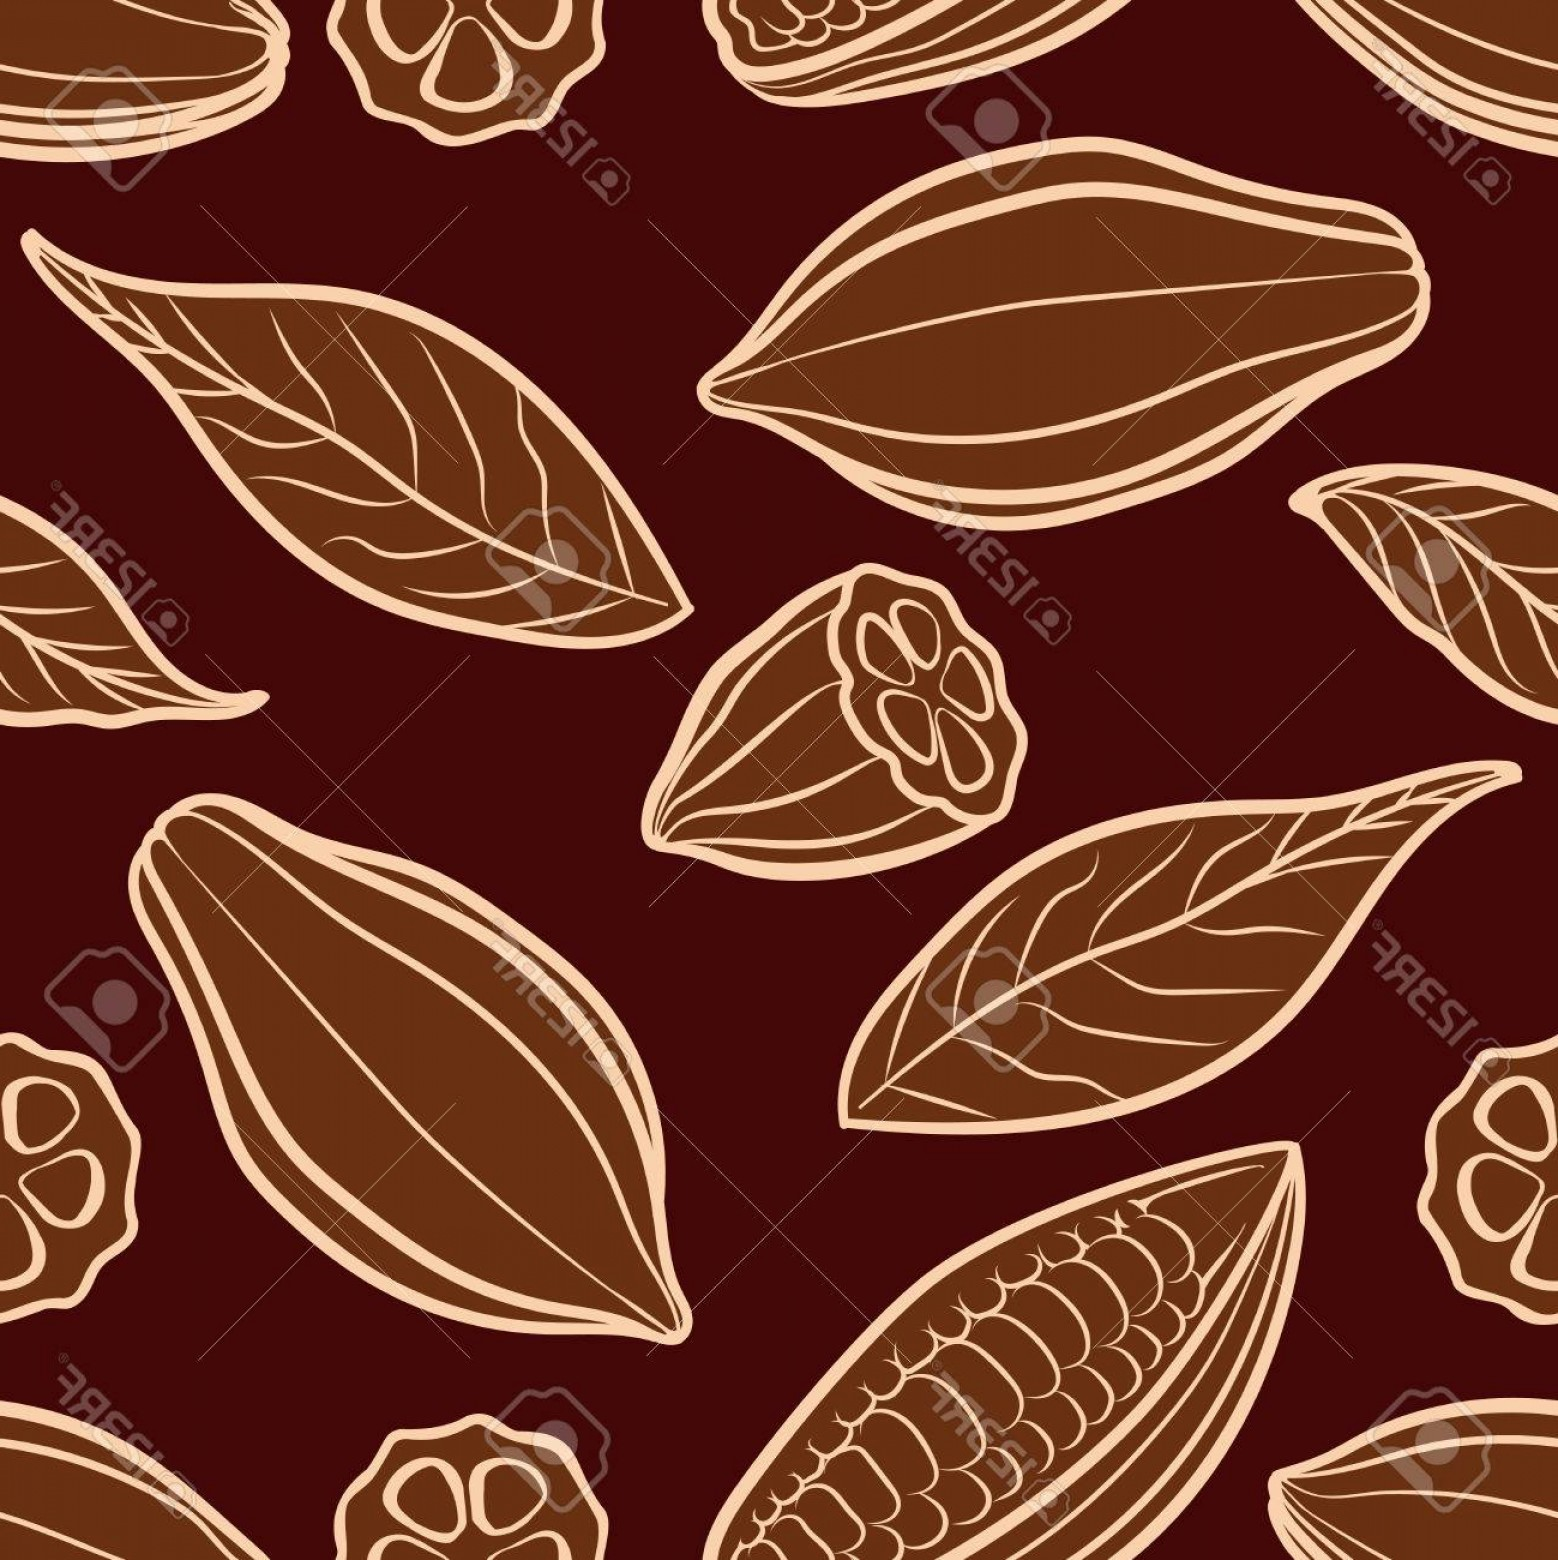 Chocolate Vector Plant: Photostock Vector Cocoa Beans Engraved Seamless Pattern Chocolate Packing Pattern